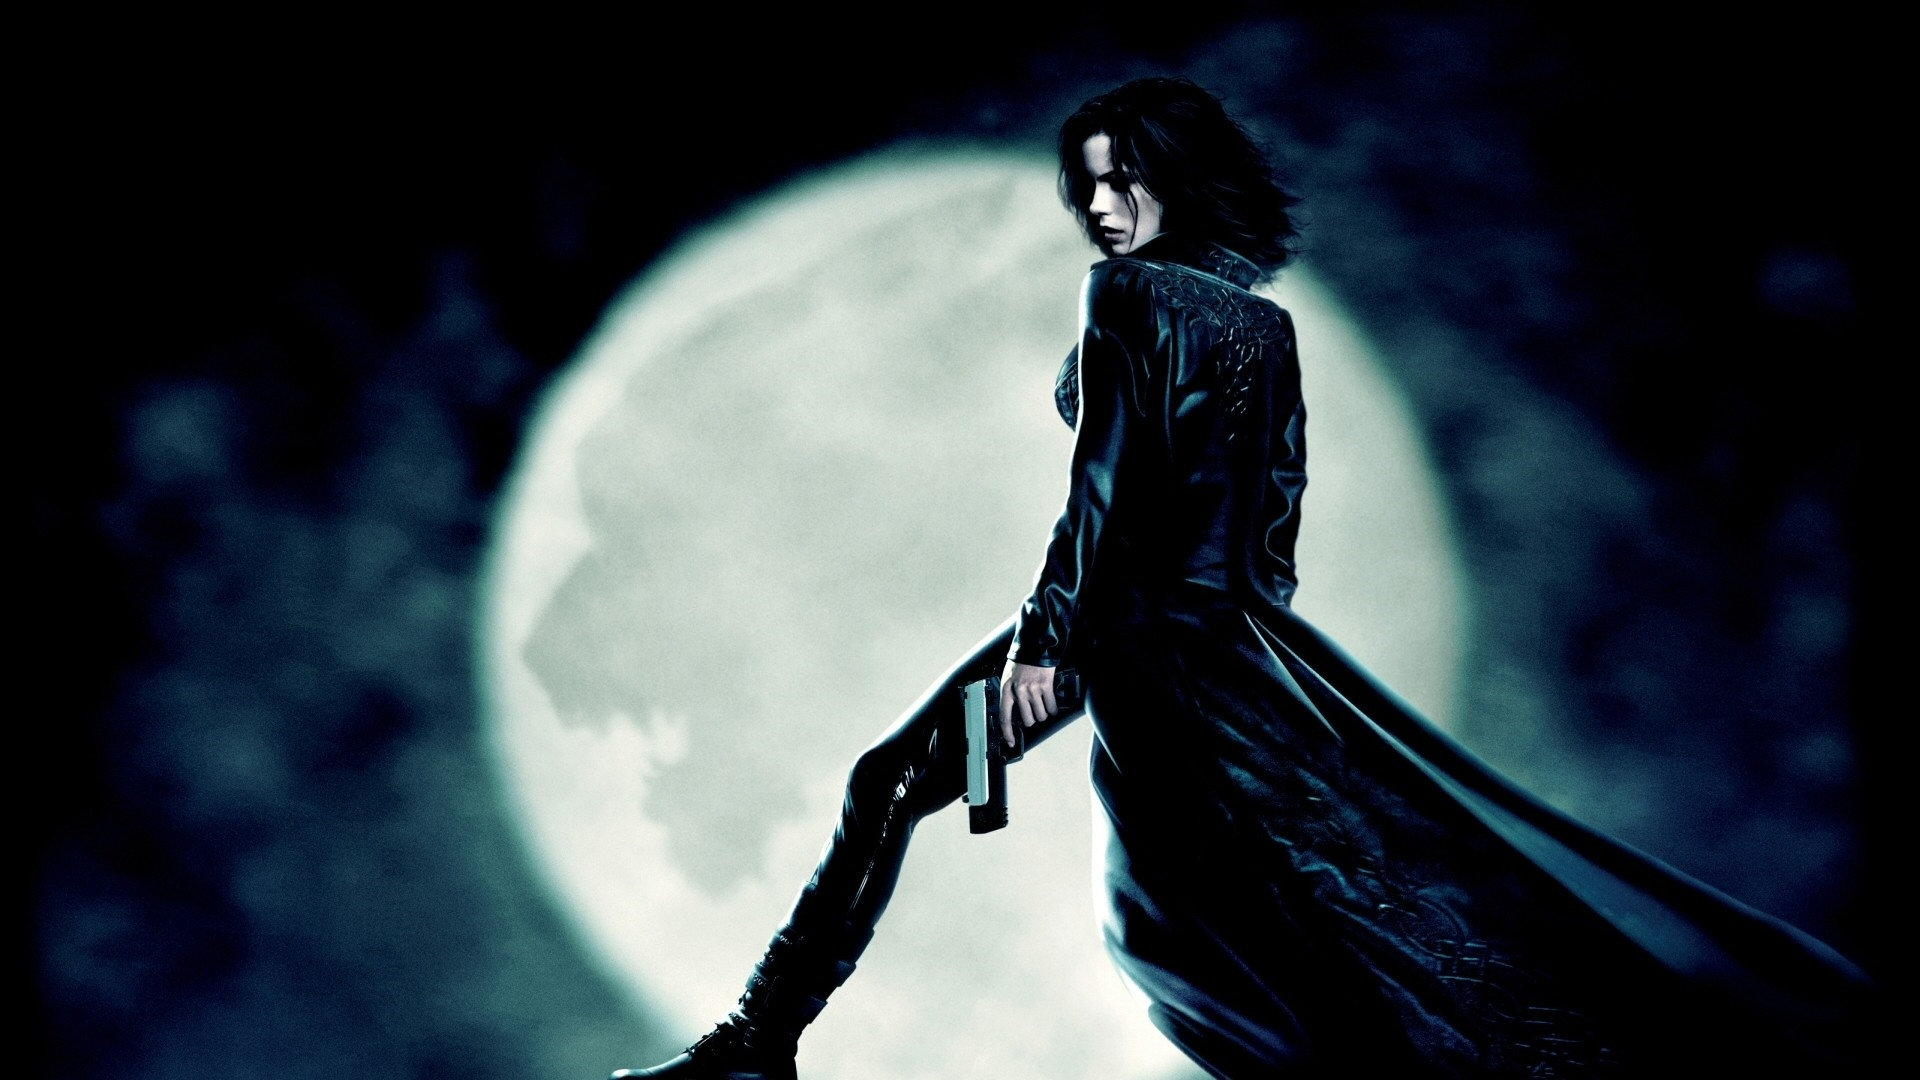 Dark Anime Art Underworld Poster Movie Hd 388935 Wallpaper